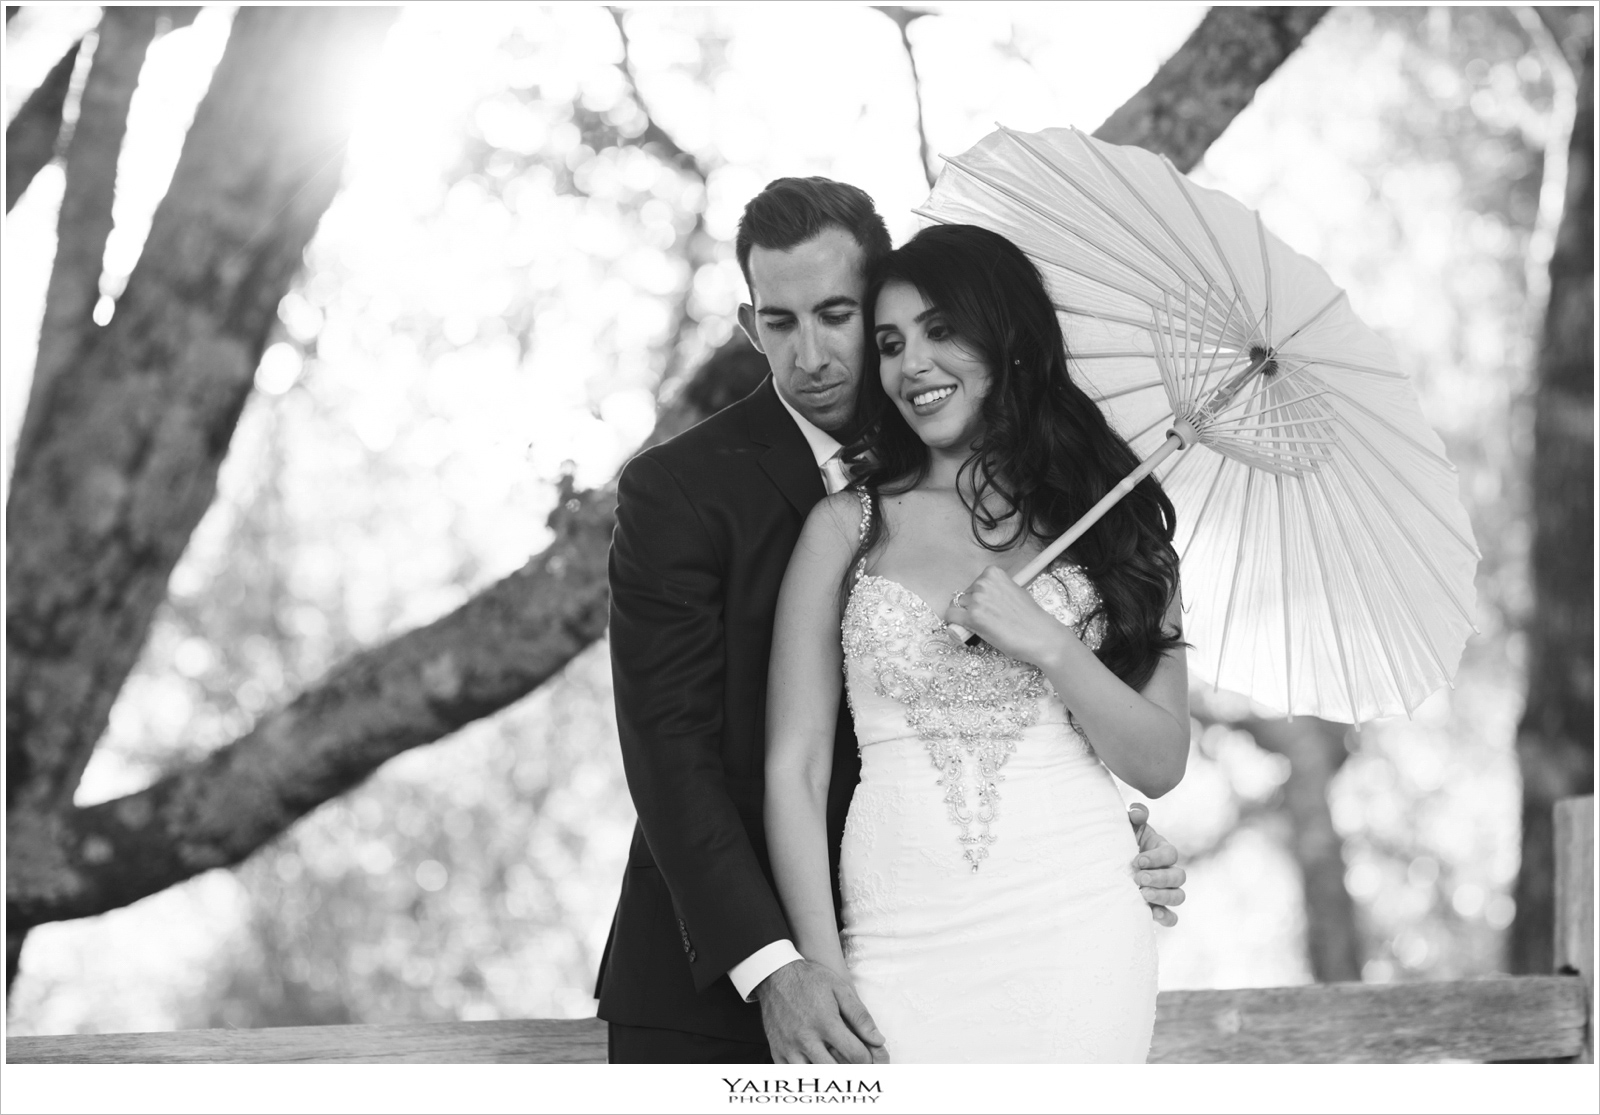 Destination-wedding-photographer-Yair-Haim-44